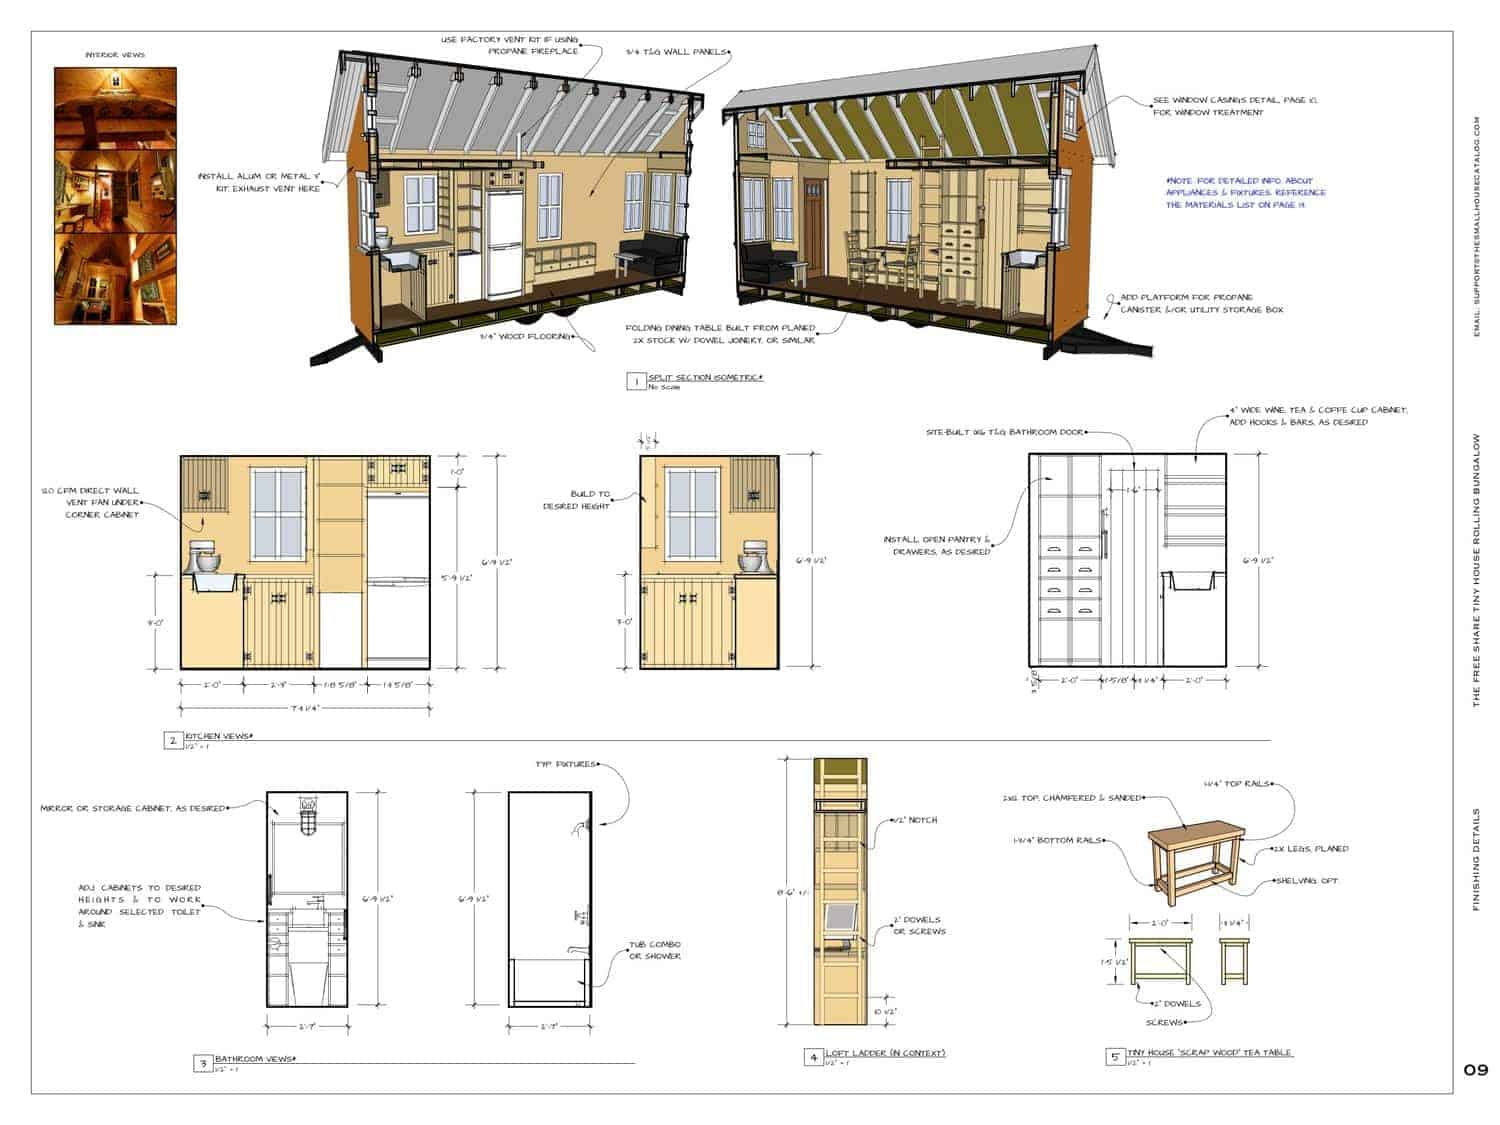 Get free plans to build this adorable tiny bungalow for Tiny house cabin plans